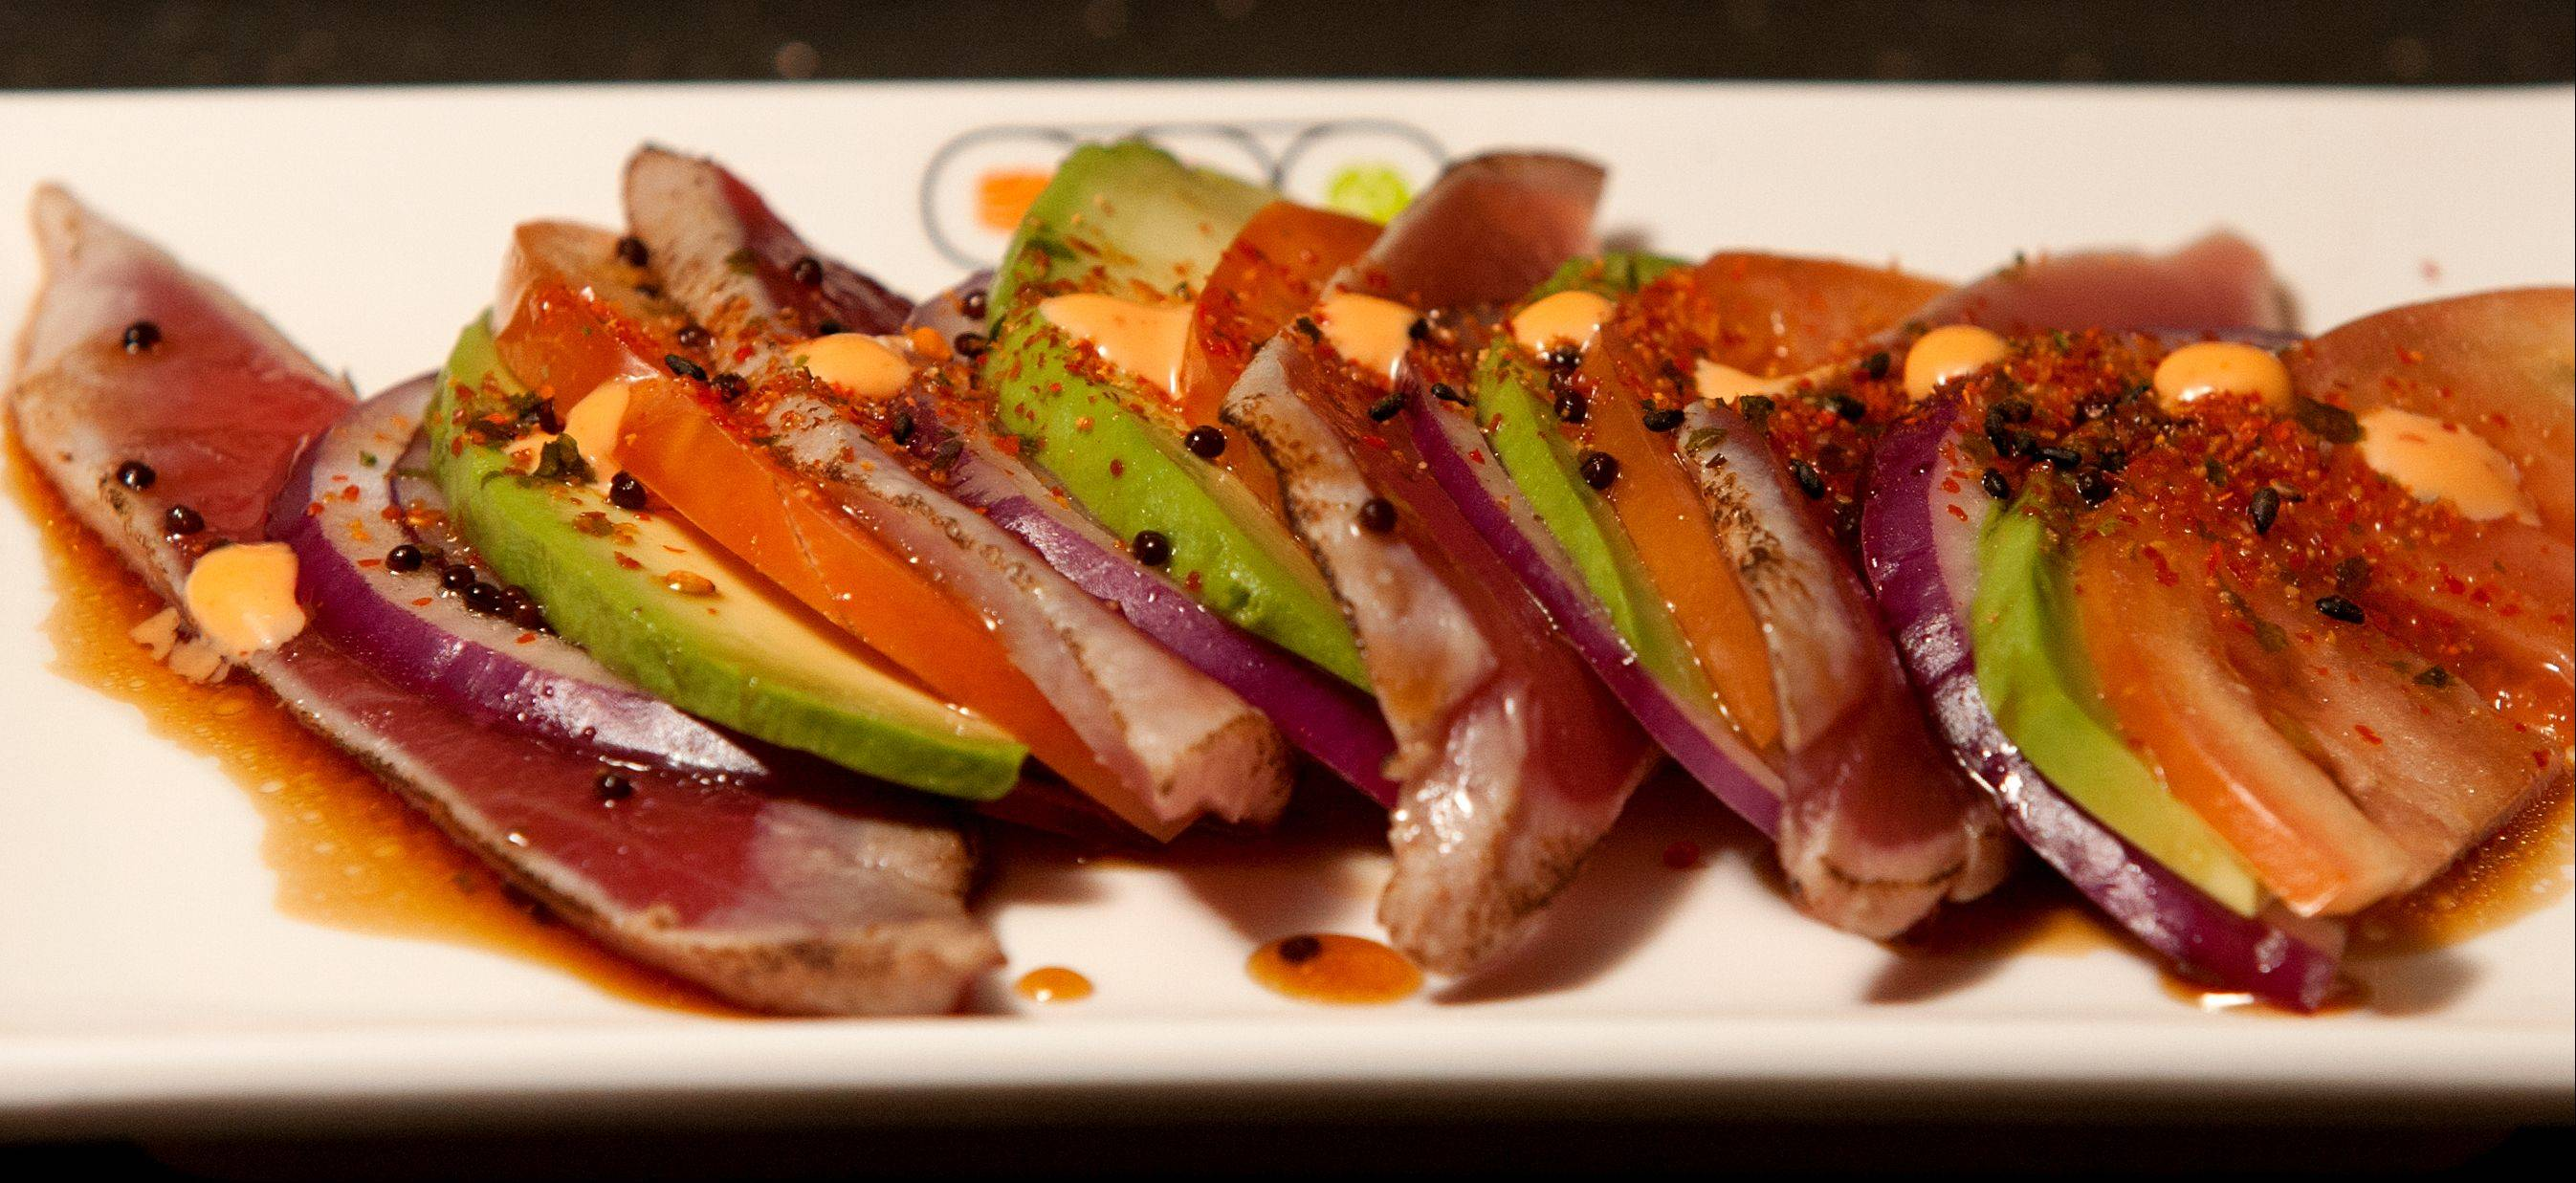 Tuna Tataki is a palate pleaser at Sushi + Rotary Sushi Bar in Aurora.